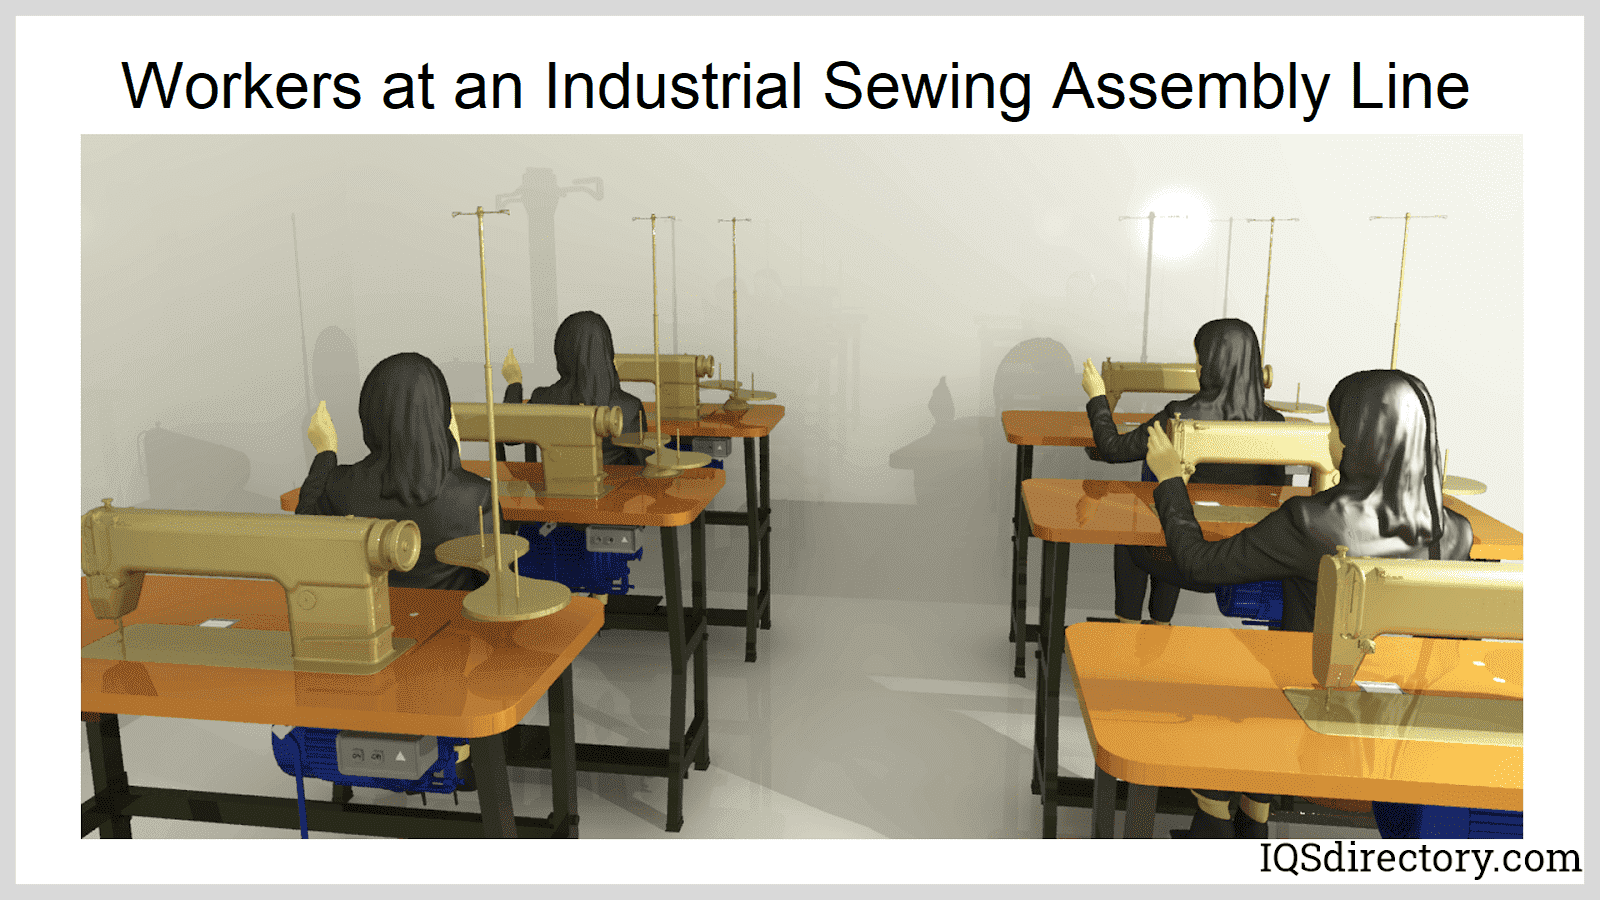 Women Working at an Industrial Sewing Assembly Line